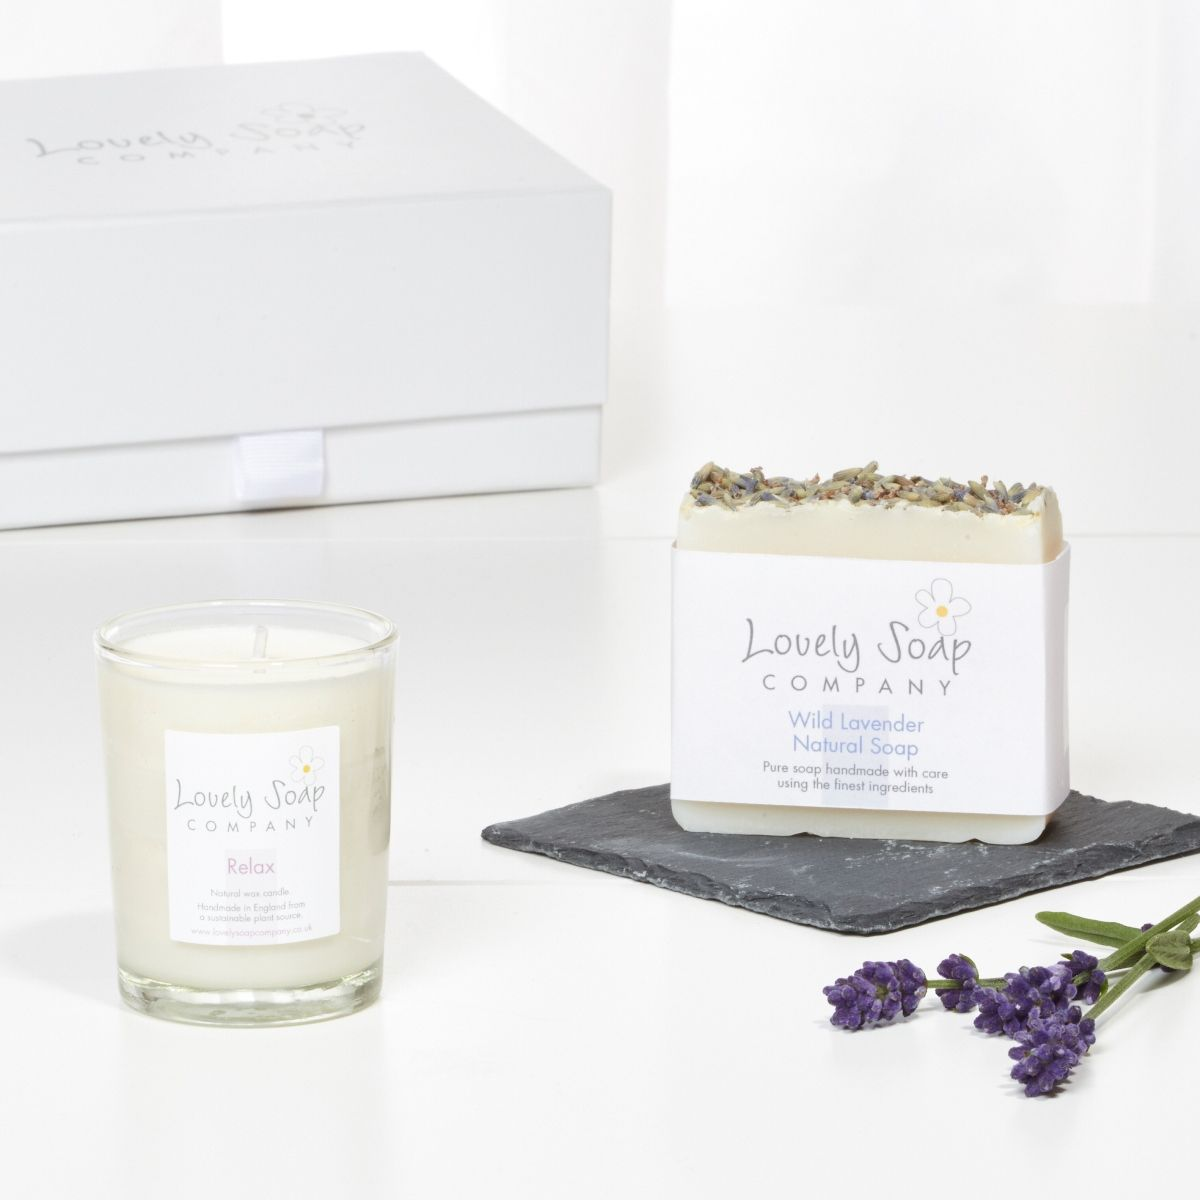 A lovely thank you pamper gift pampering gifts bath